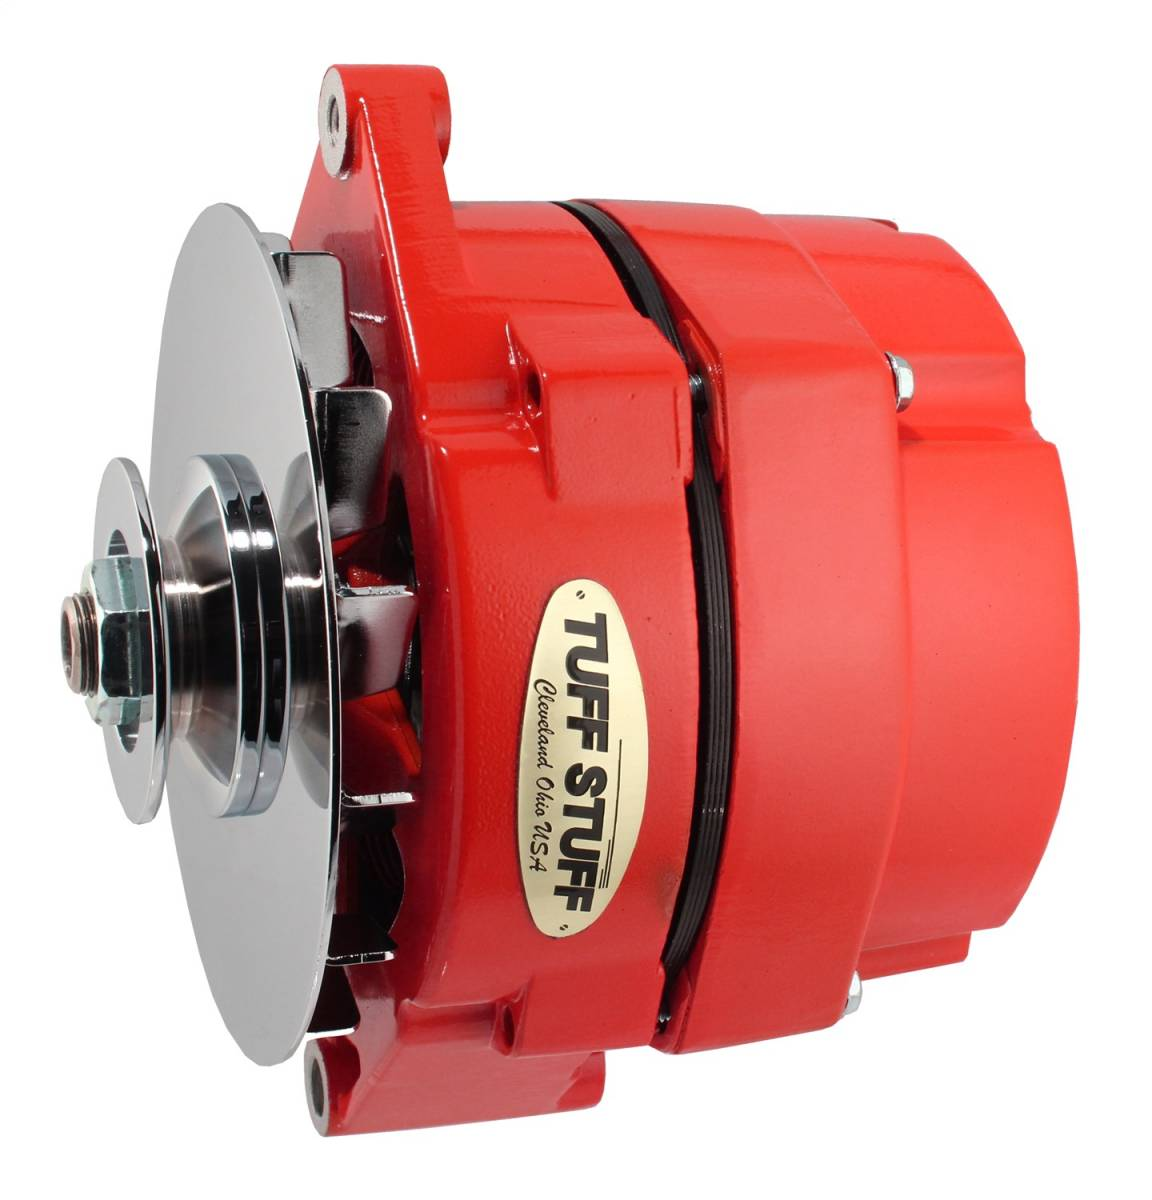 Tuff Stuff Performance - Alternator 100 AMP OEM Or 1 Wire V Groove Pulley Red Powdercoat w/Chrome Accents 7127NFRED